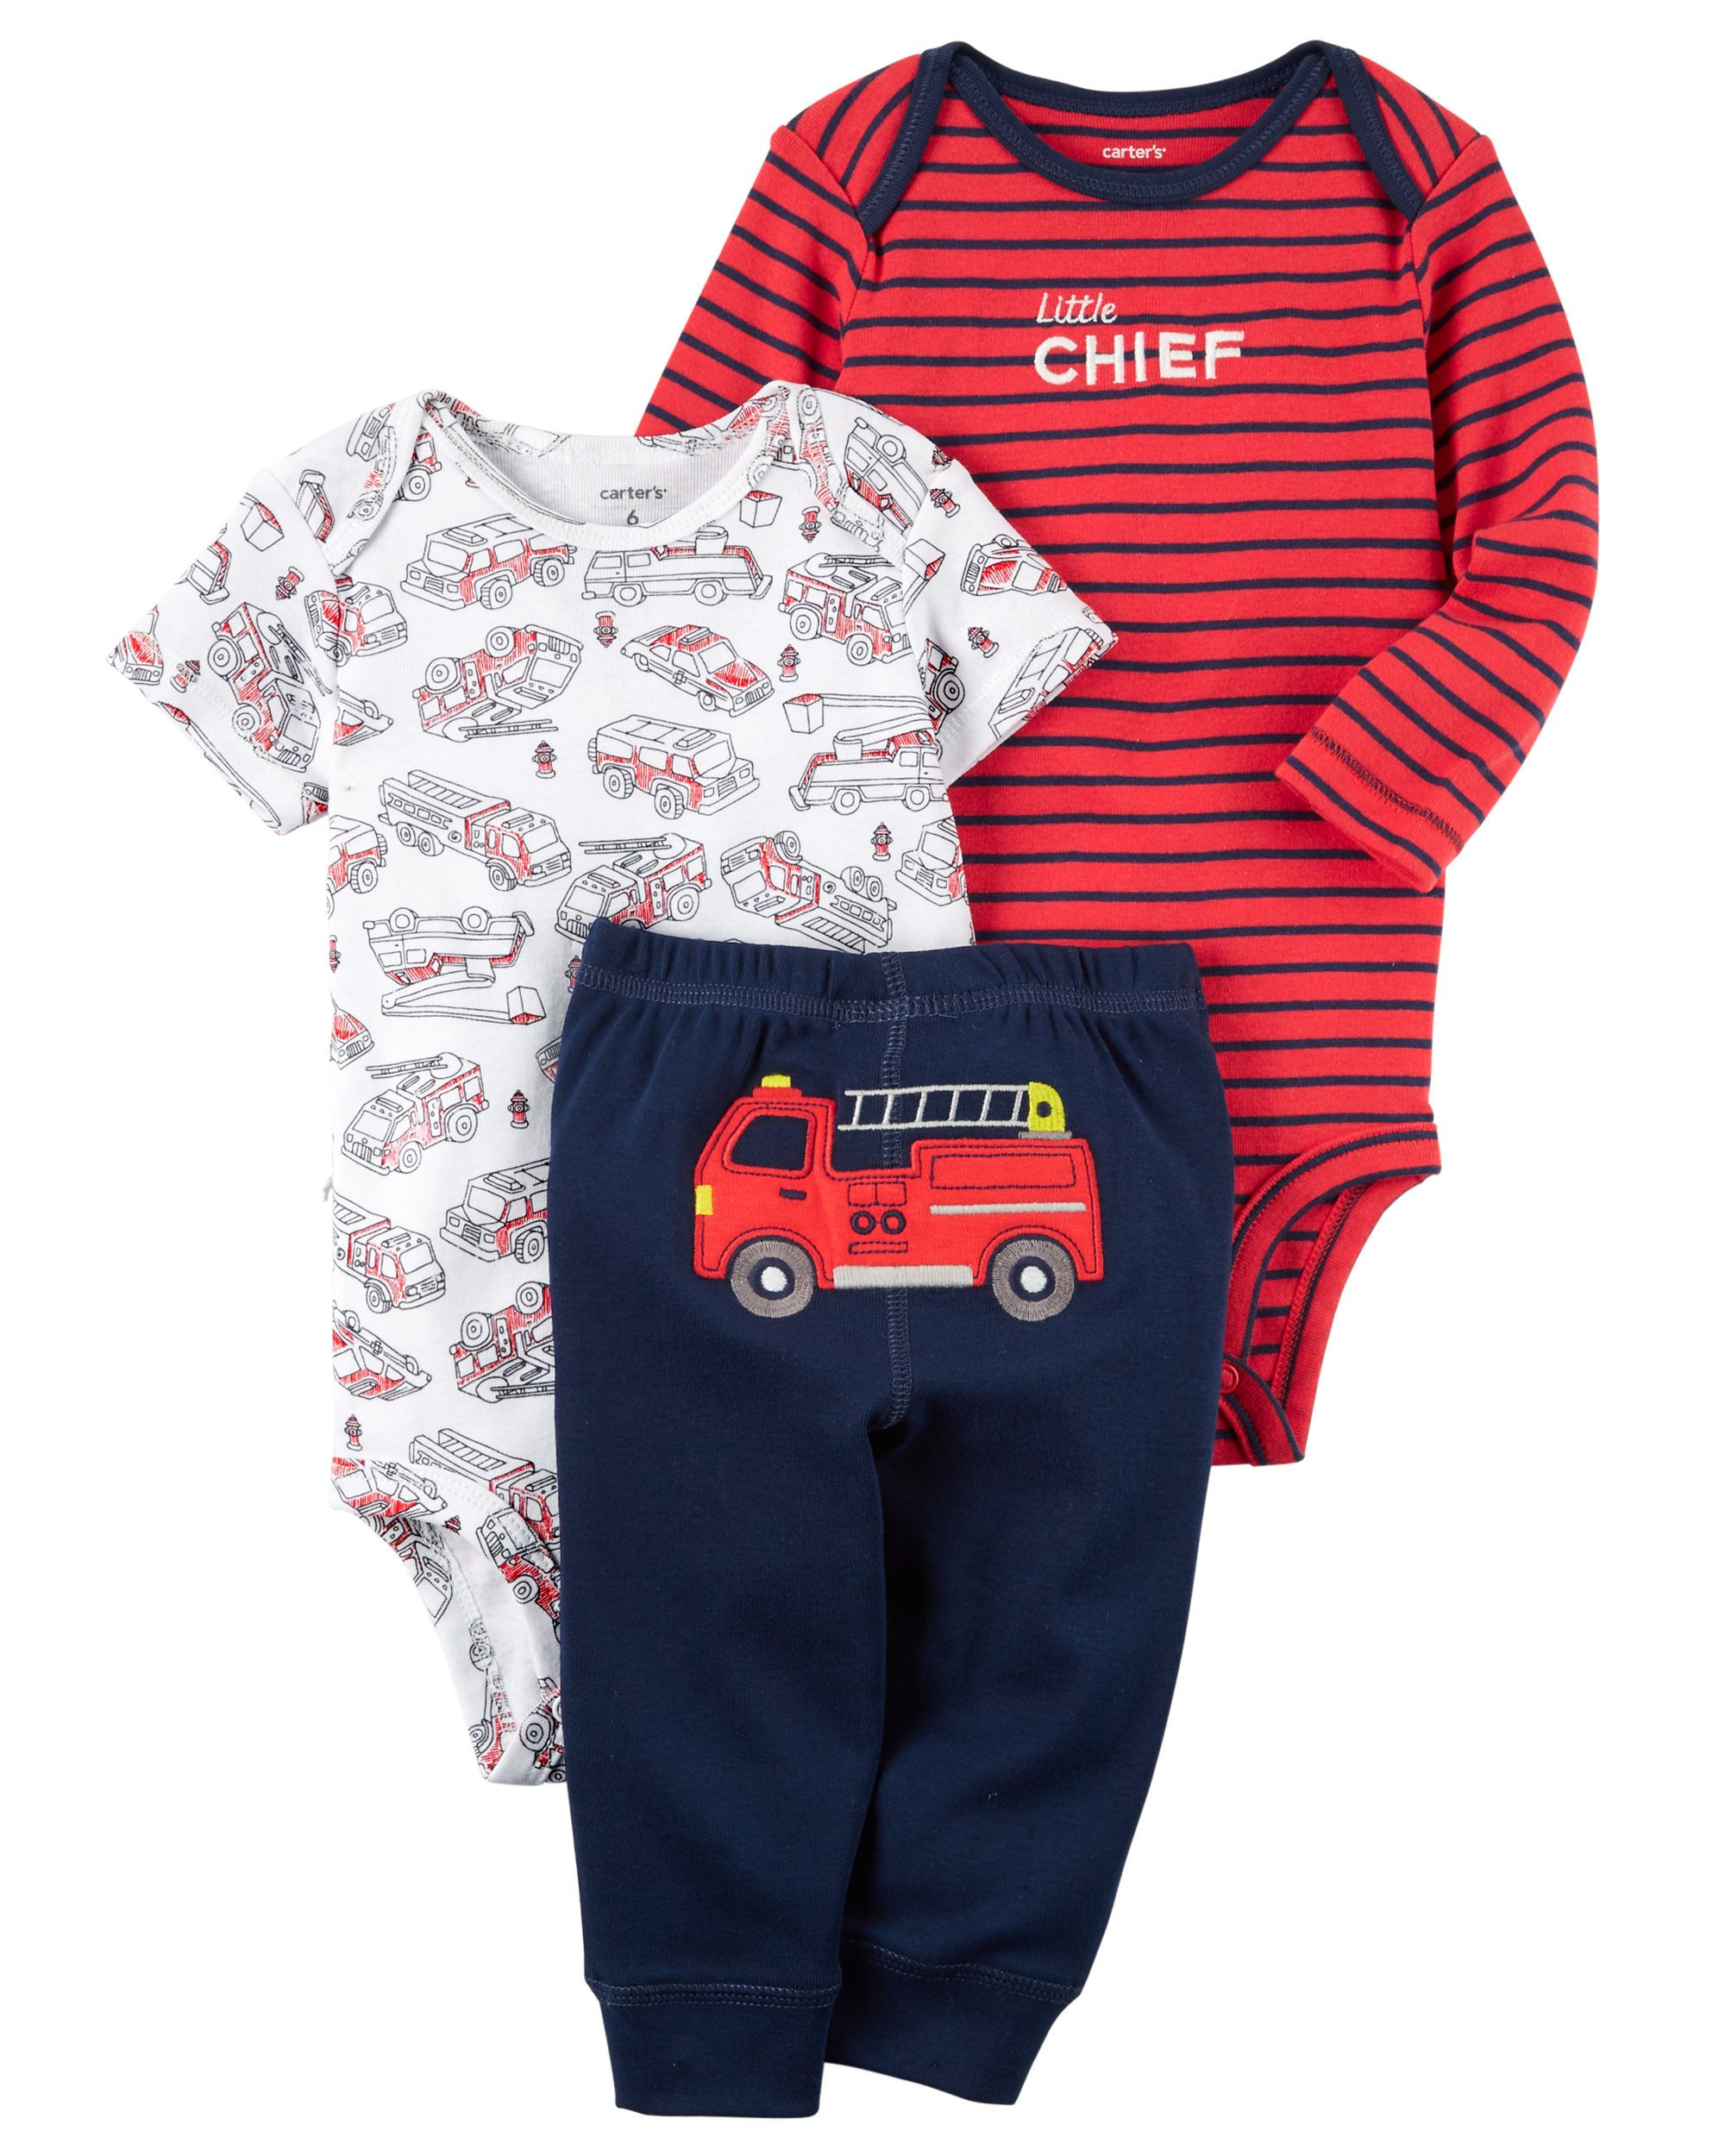 1506b48b2 Featuring a cute little firetruck on the bottom and two coordinating  bodysuits, this babysoft cotton set lets him mix and match with essential  pants.